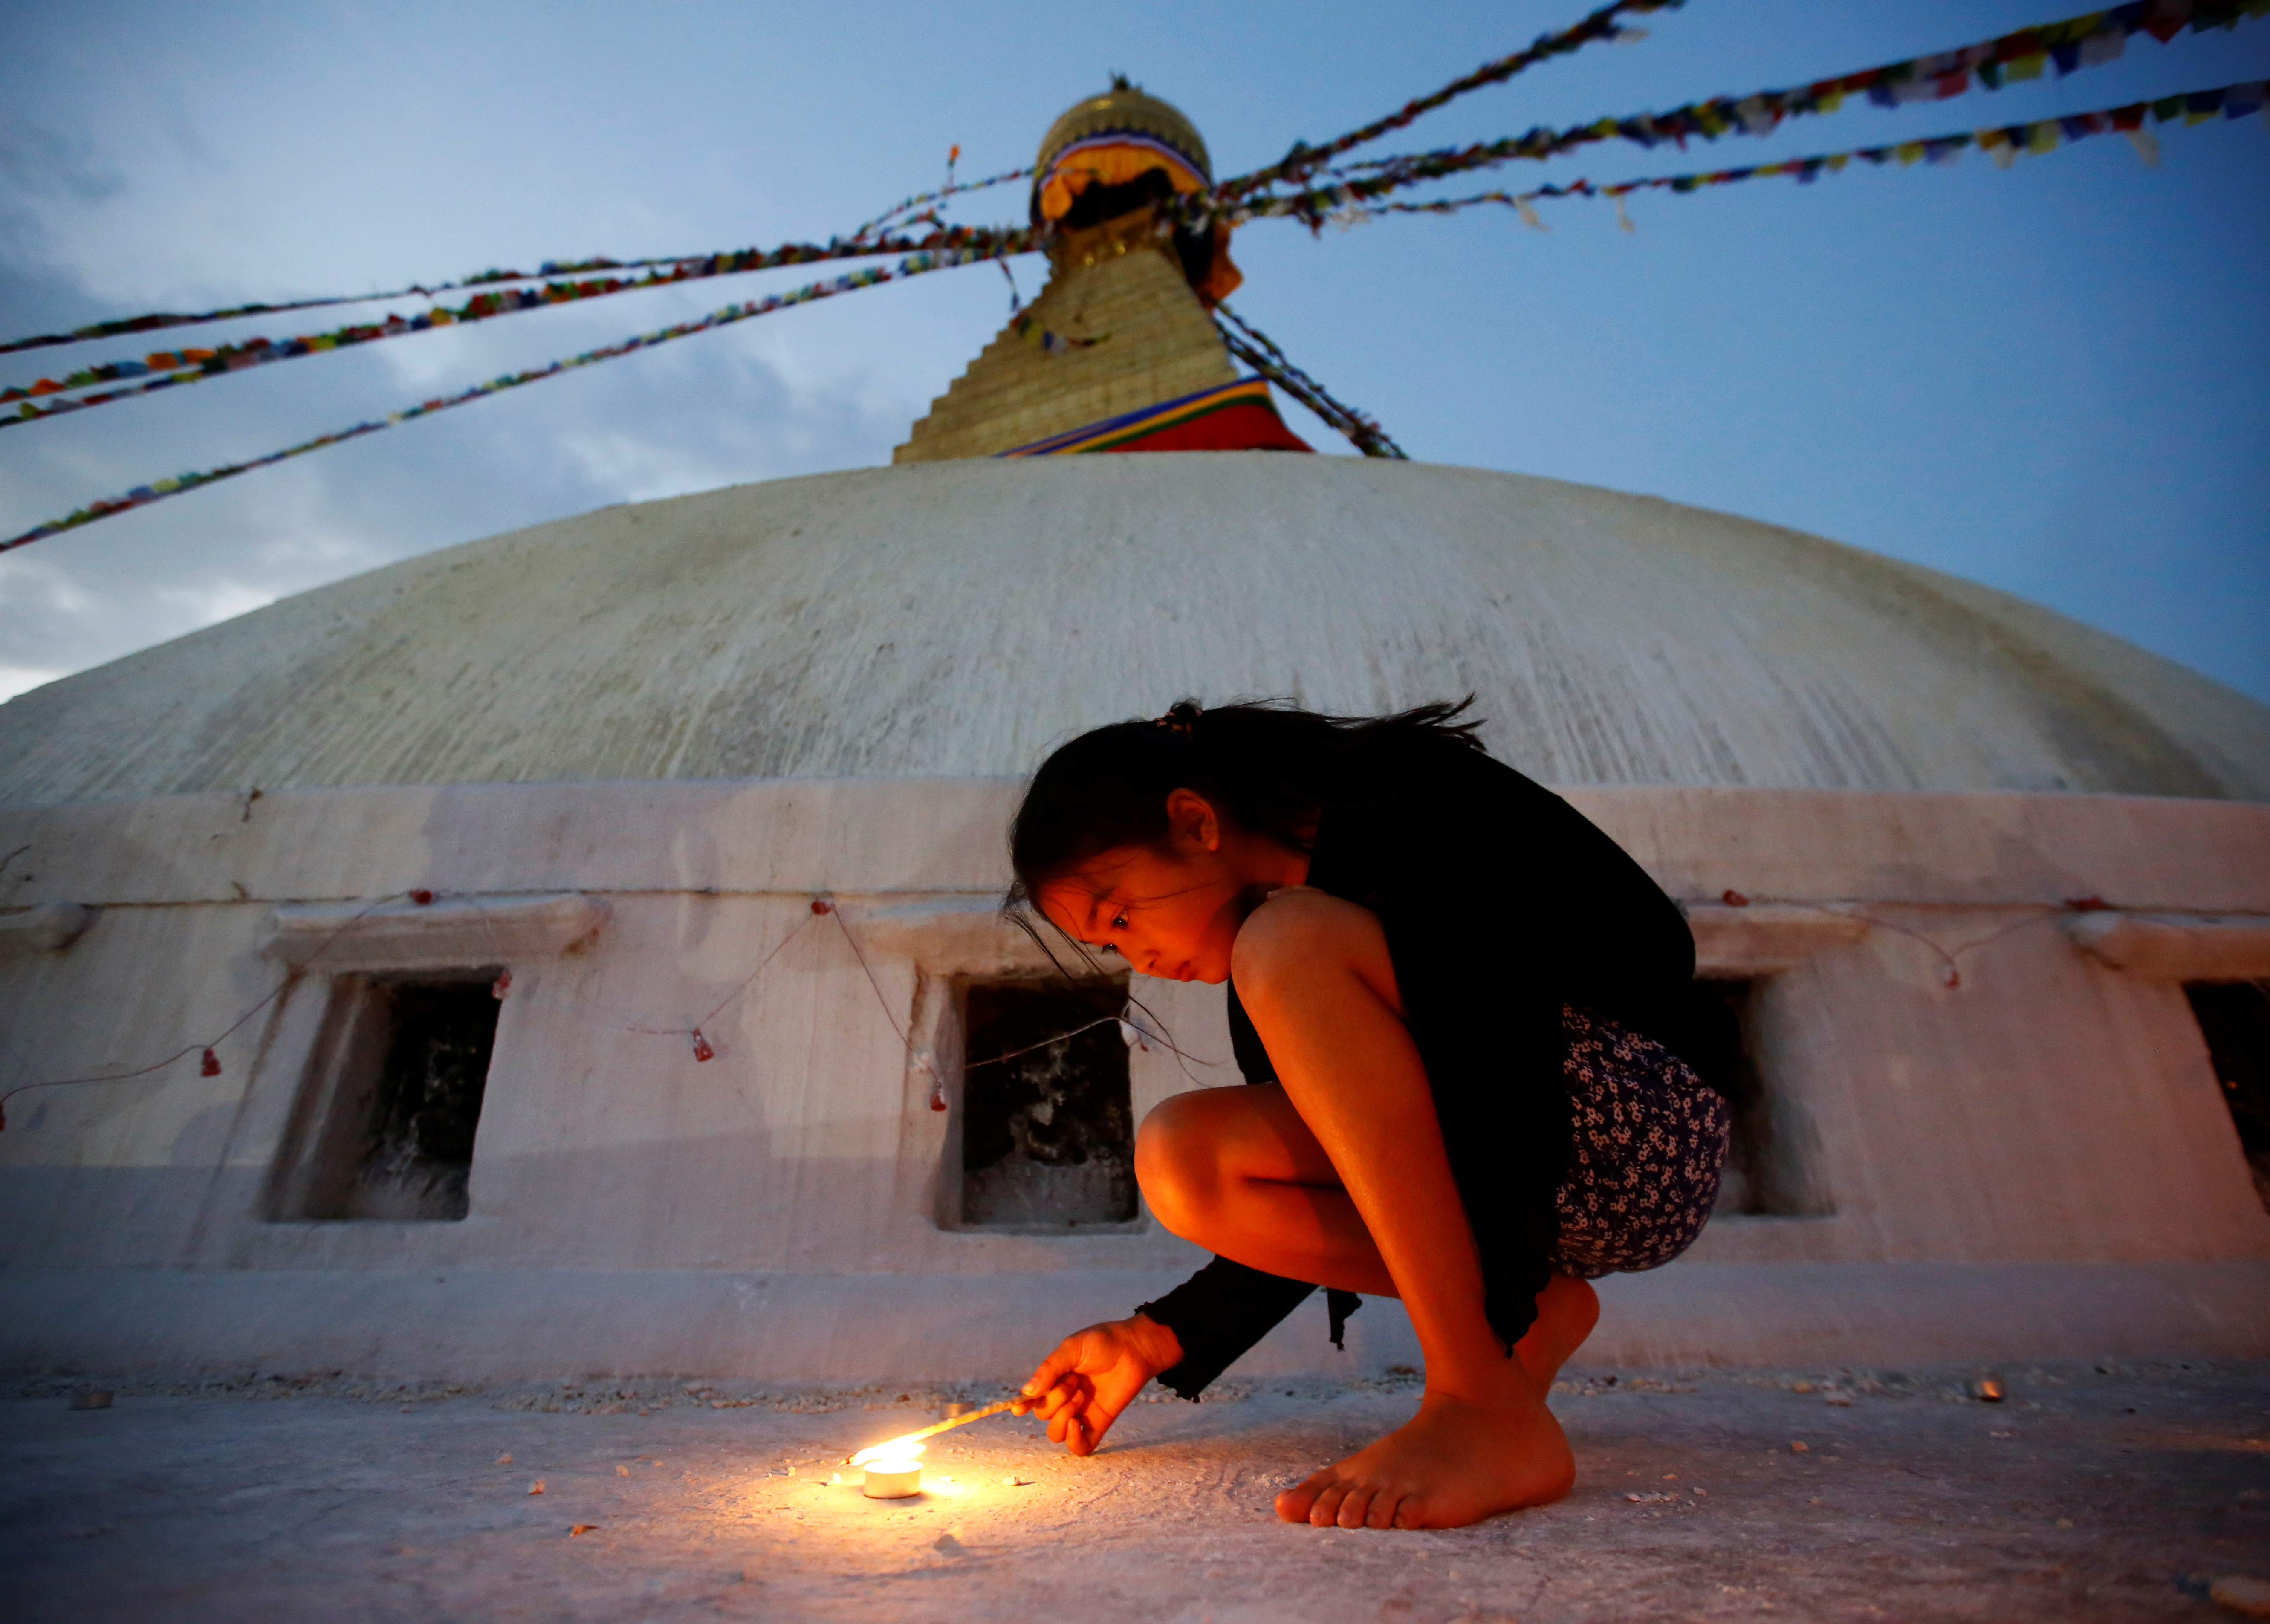 A girl lights a candle as she marks the anniversary of 2015 Nepal earthquake, at Boudhanath stupa in Kathmandu on April 25, 2017